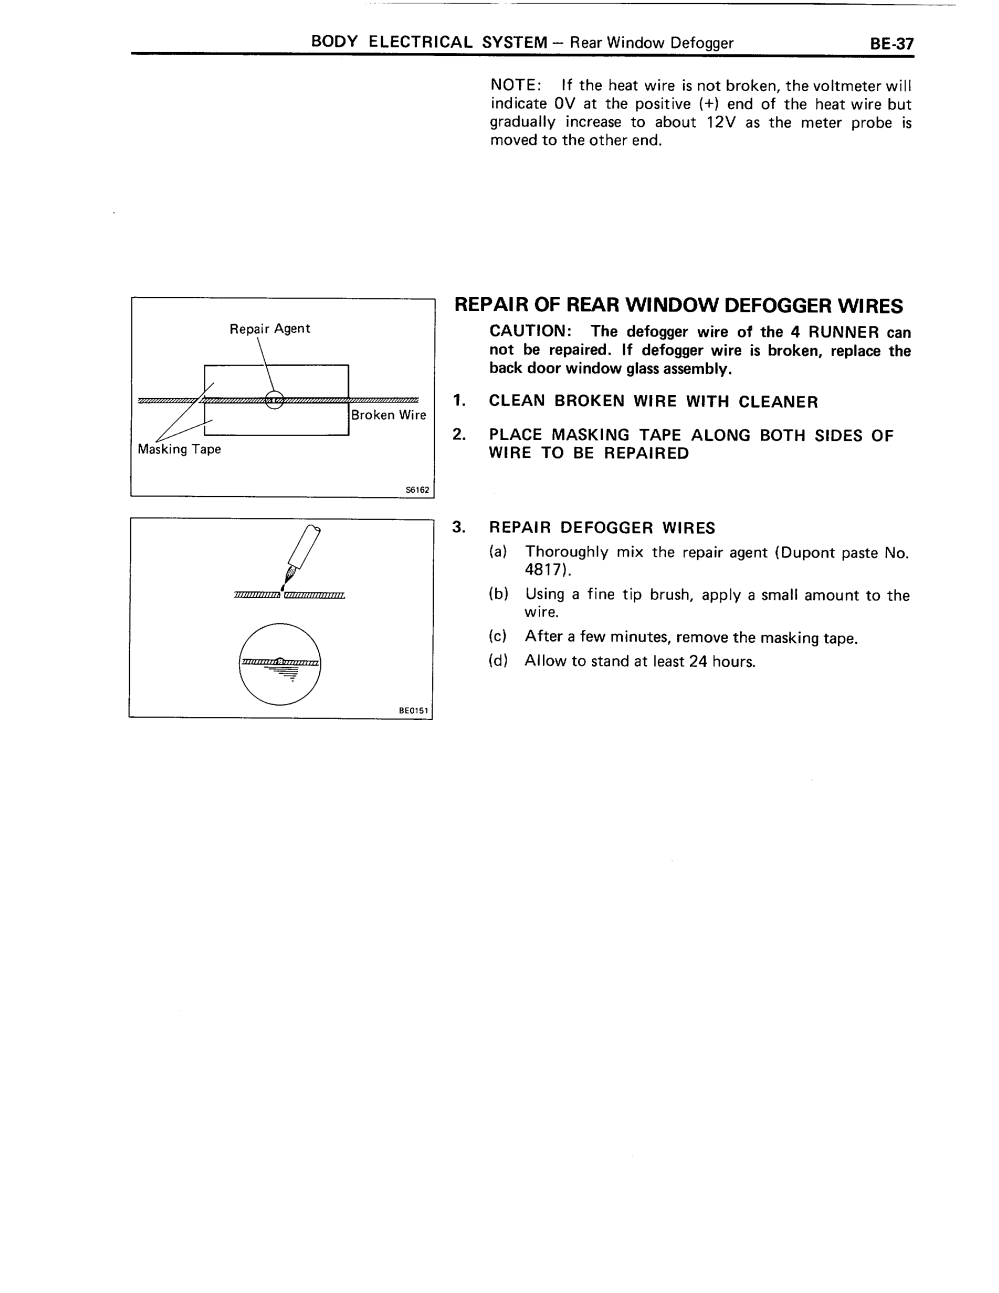 medium resolution of  88 4runner rear widow defroster wiring help toyota truck and 4runner 88 defogger page 3 png